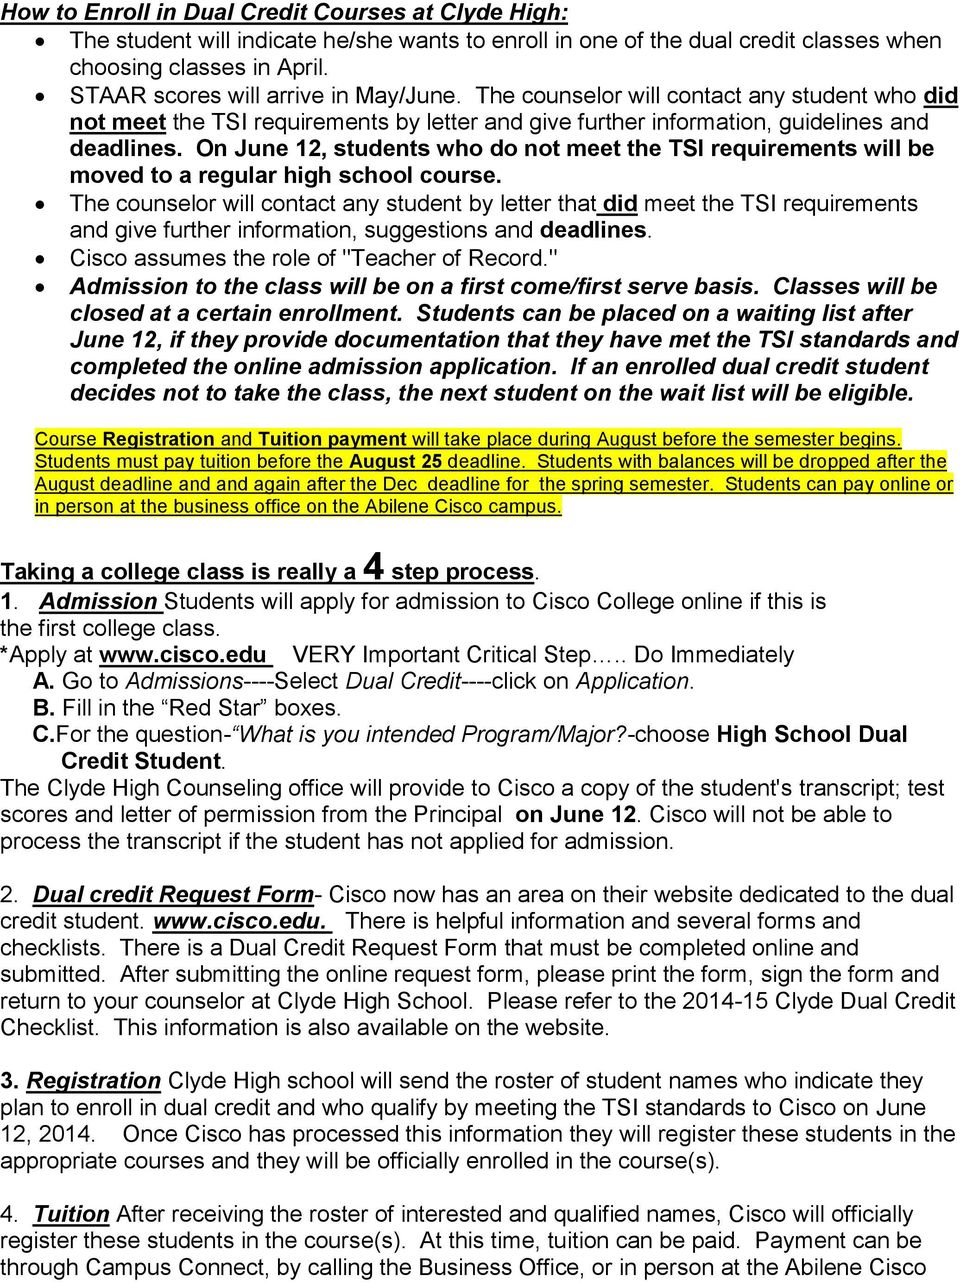 On June 12, students who do not meet the TSI requirements will be moved to a regular high school course.